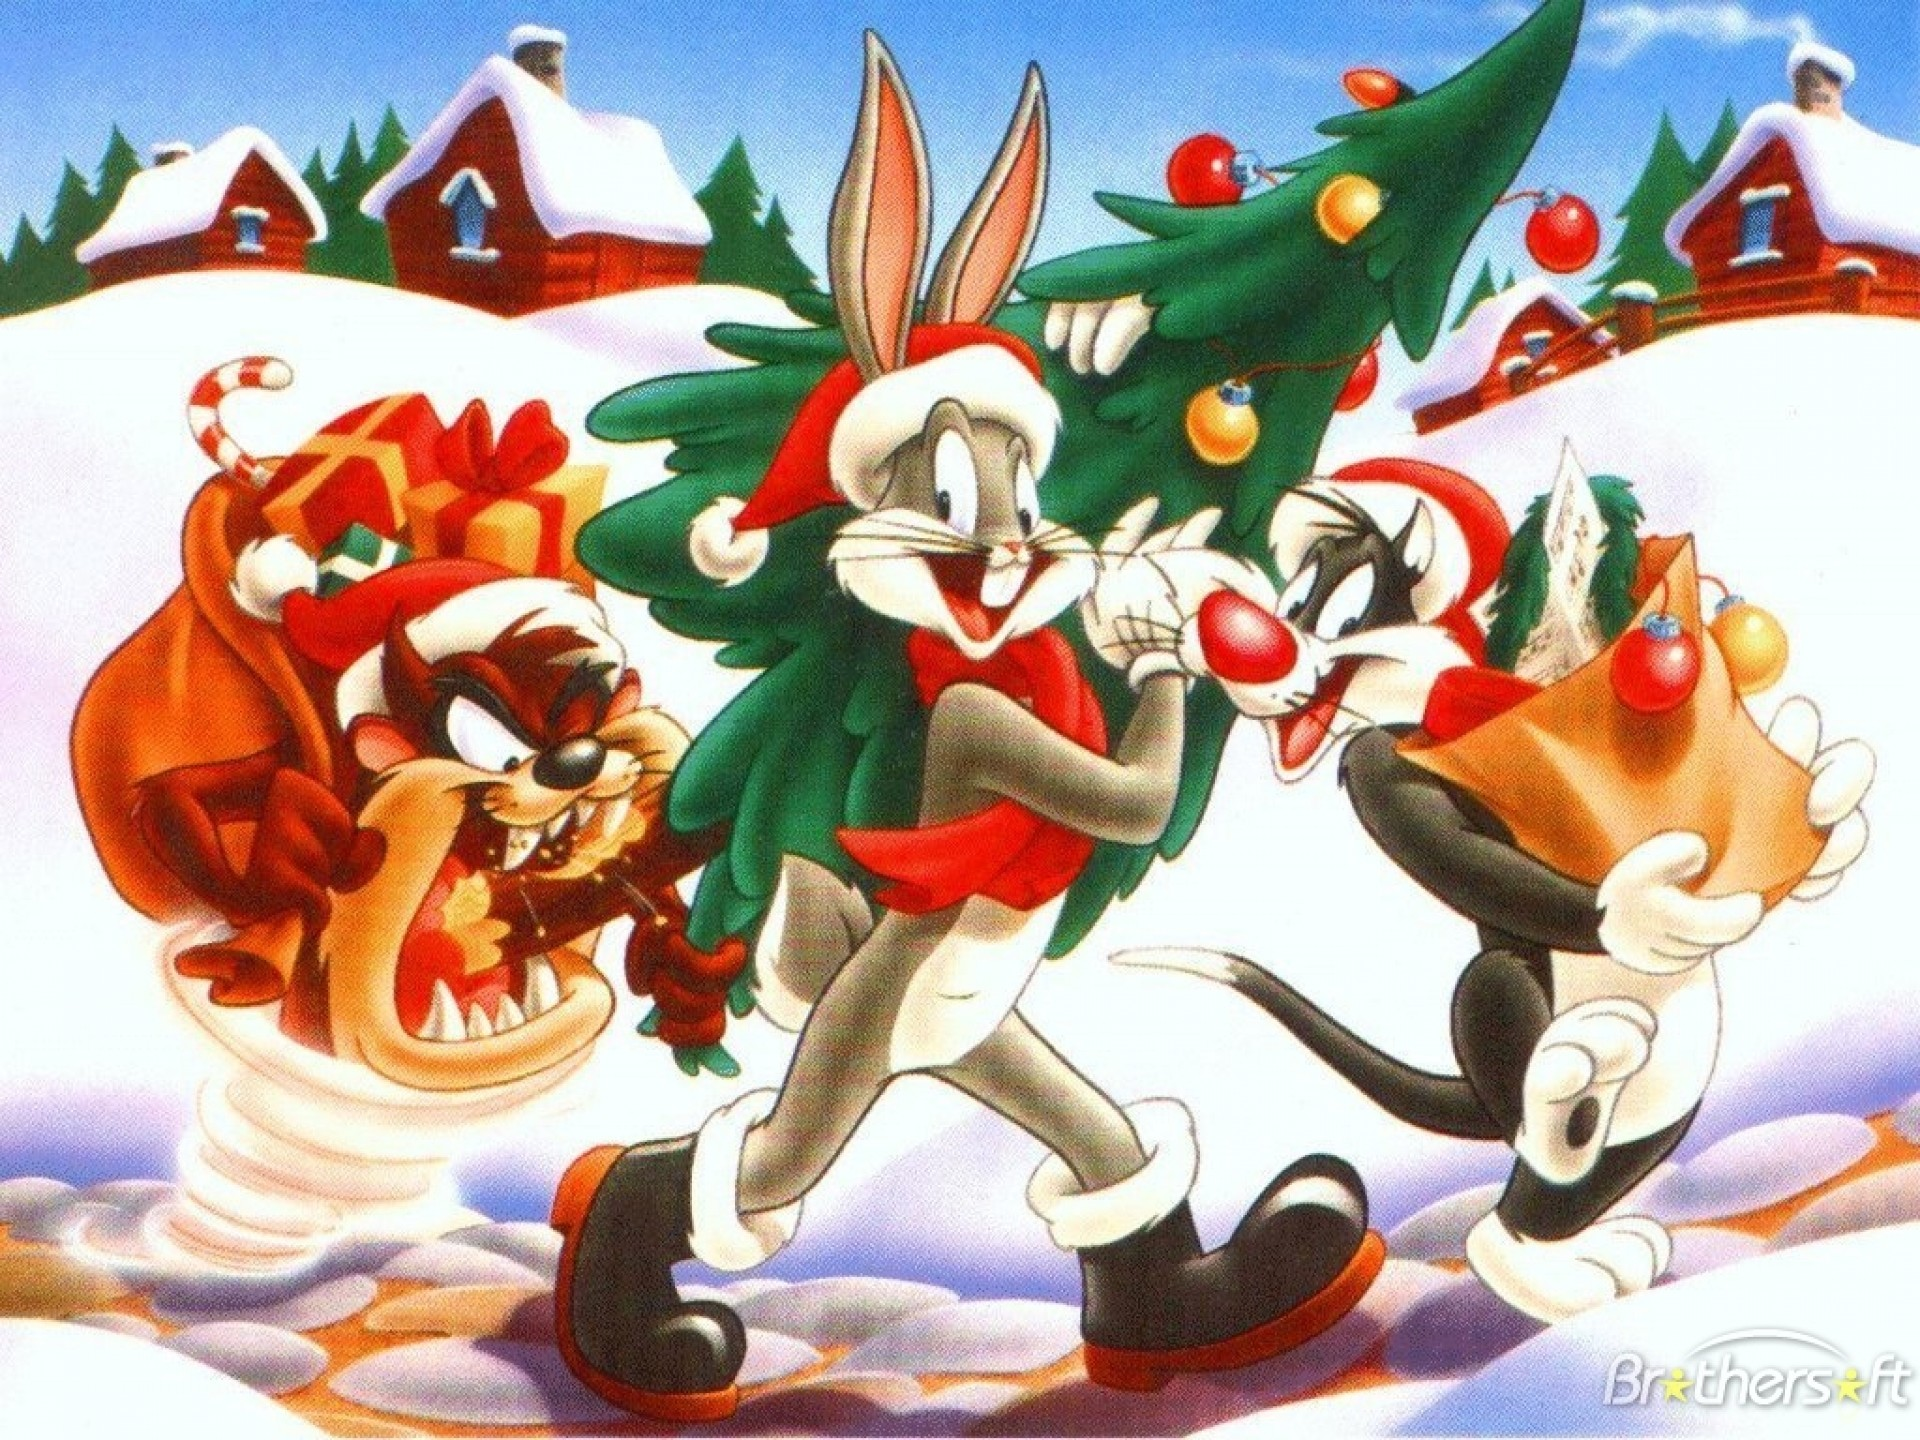 Res: 1920x1440, Looney tunes christmas bugs bunny g wallpaper |  | 184439 |  WallpaperUP